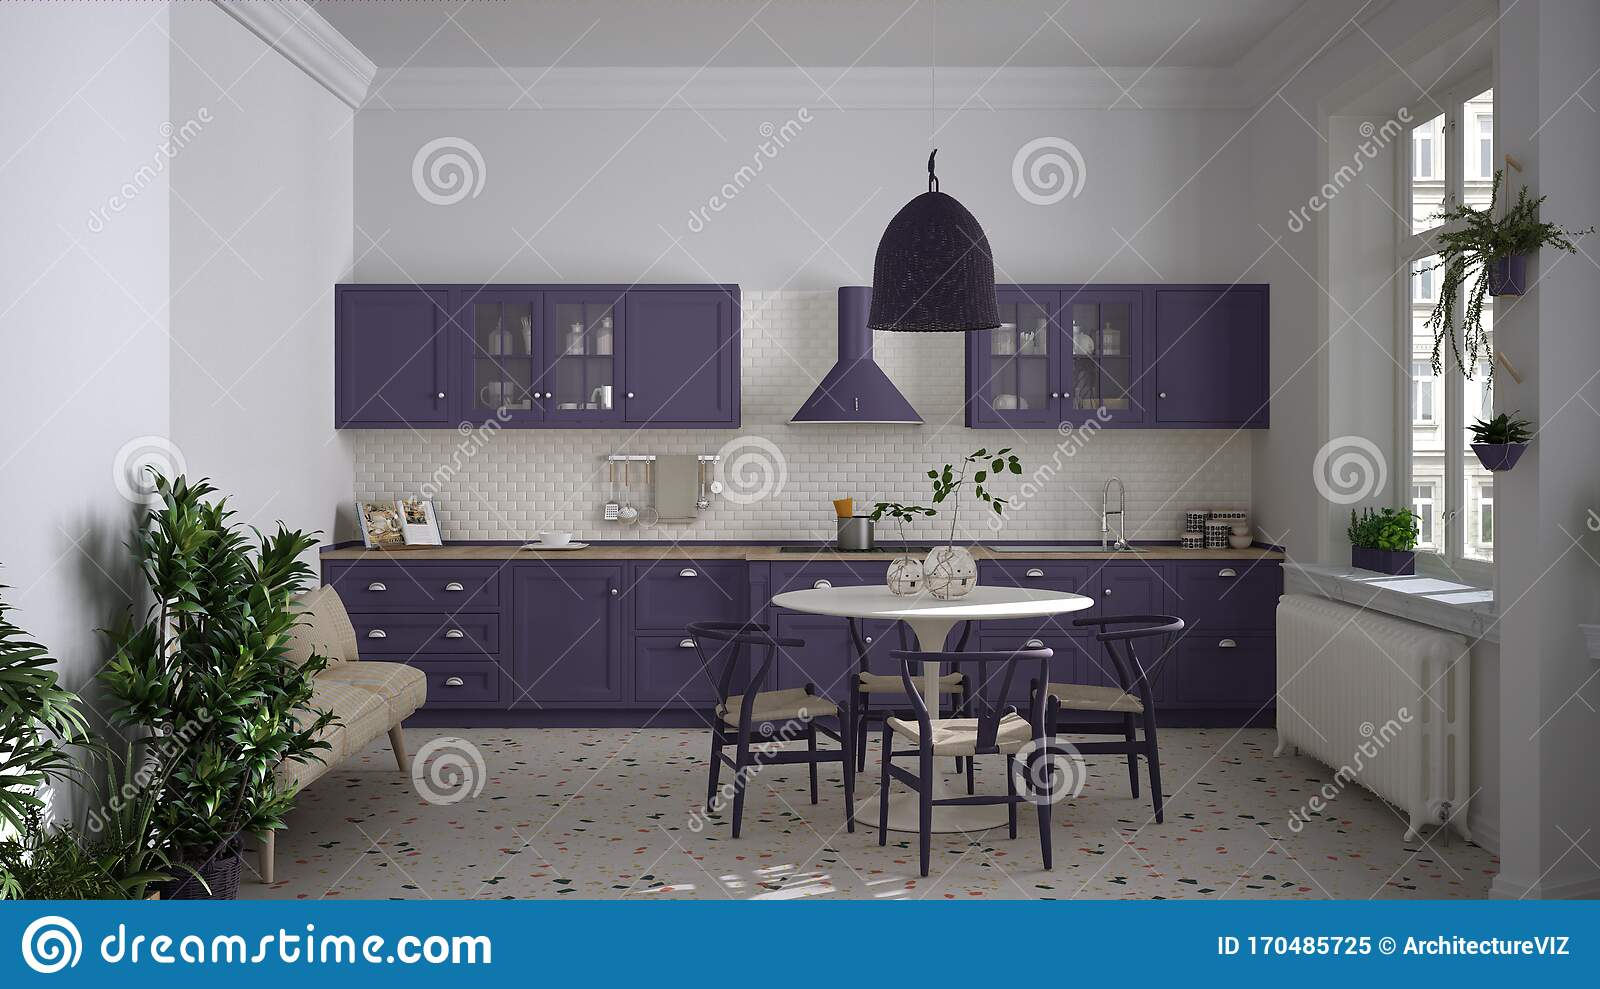 Retro White And Purple Vintage Kitchen With Terrazzo Marble Floor Panoramic Windows Dining Room Round Table With Wooden Chairs Stock Image Image Of Household House 170485725